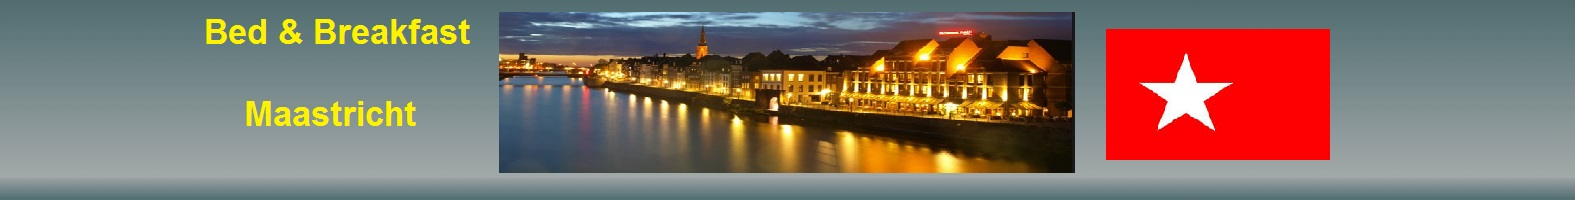 wrapper bed & breakfast maastricht